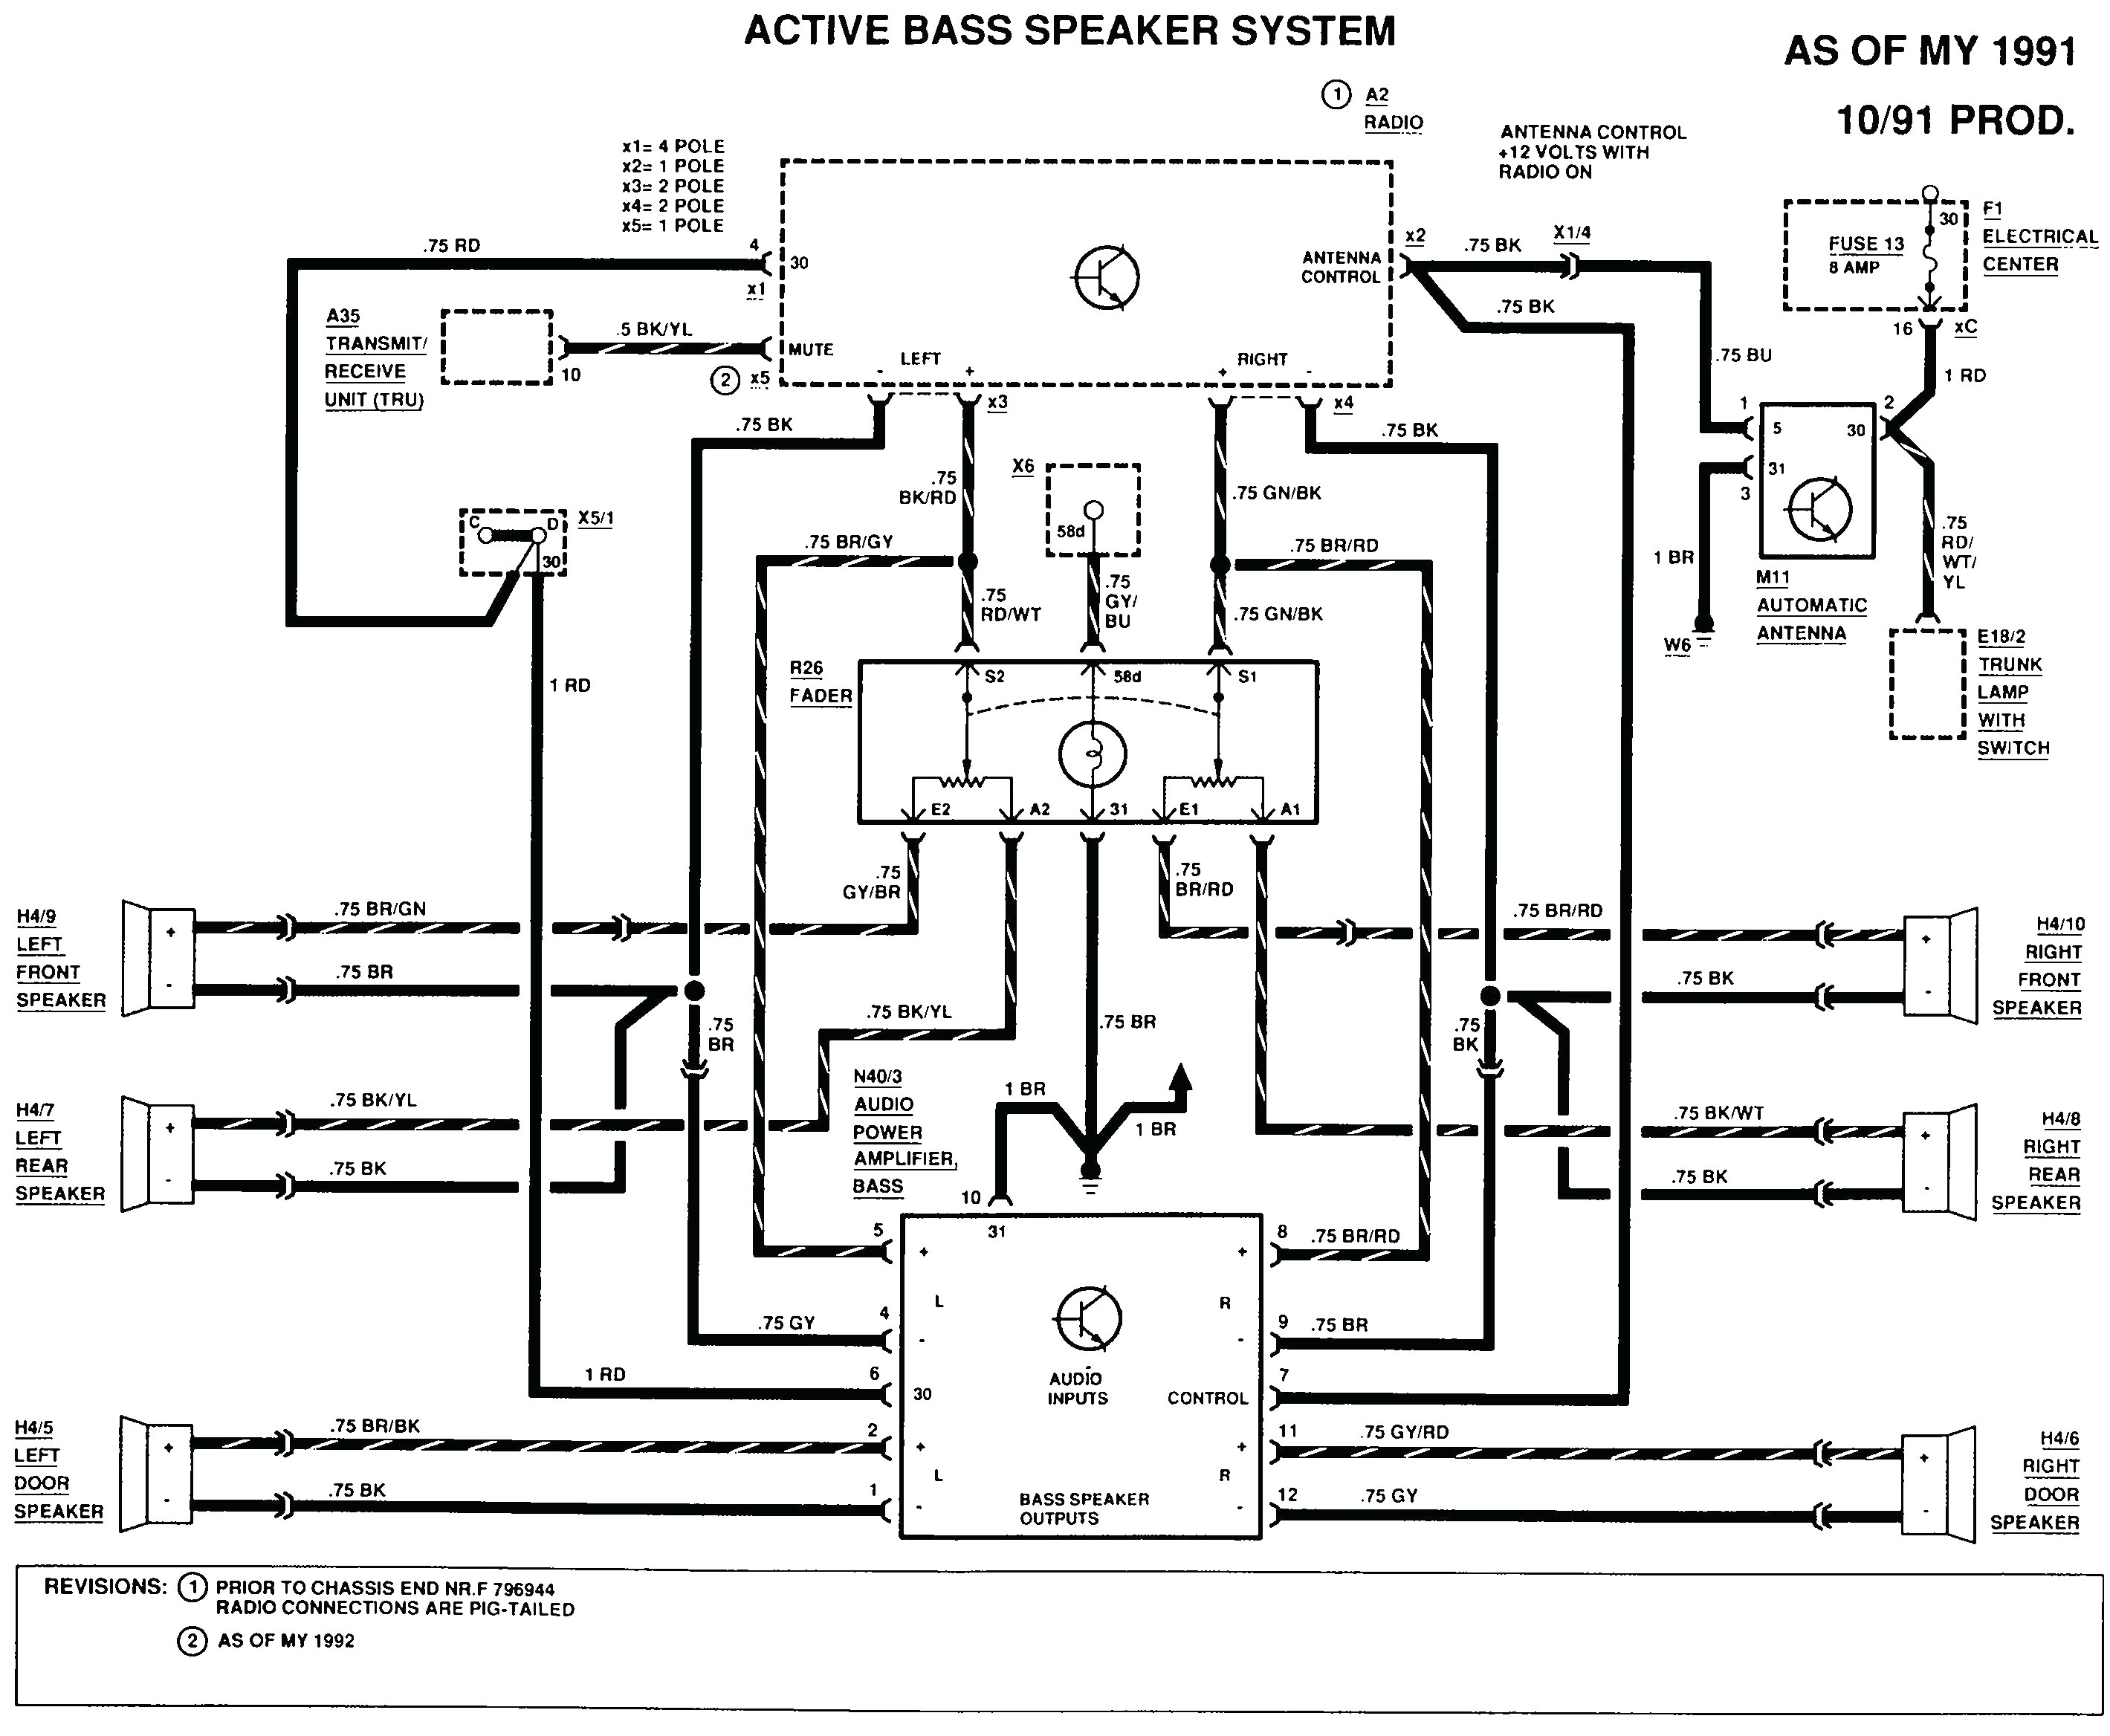 mercedes sprinter wiring diagram pdf Collection-Mercedes Sprinter Wiring Diagram Pdf Mercedes Benz Wiring Diagram 18-l